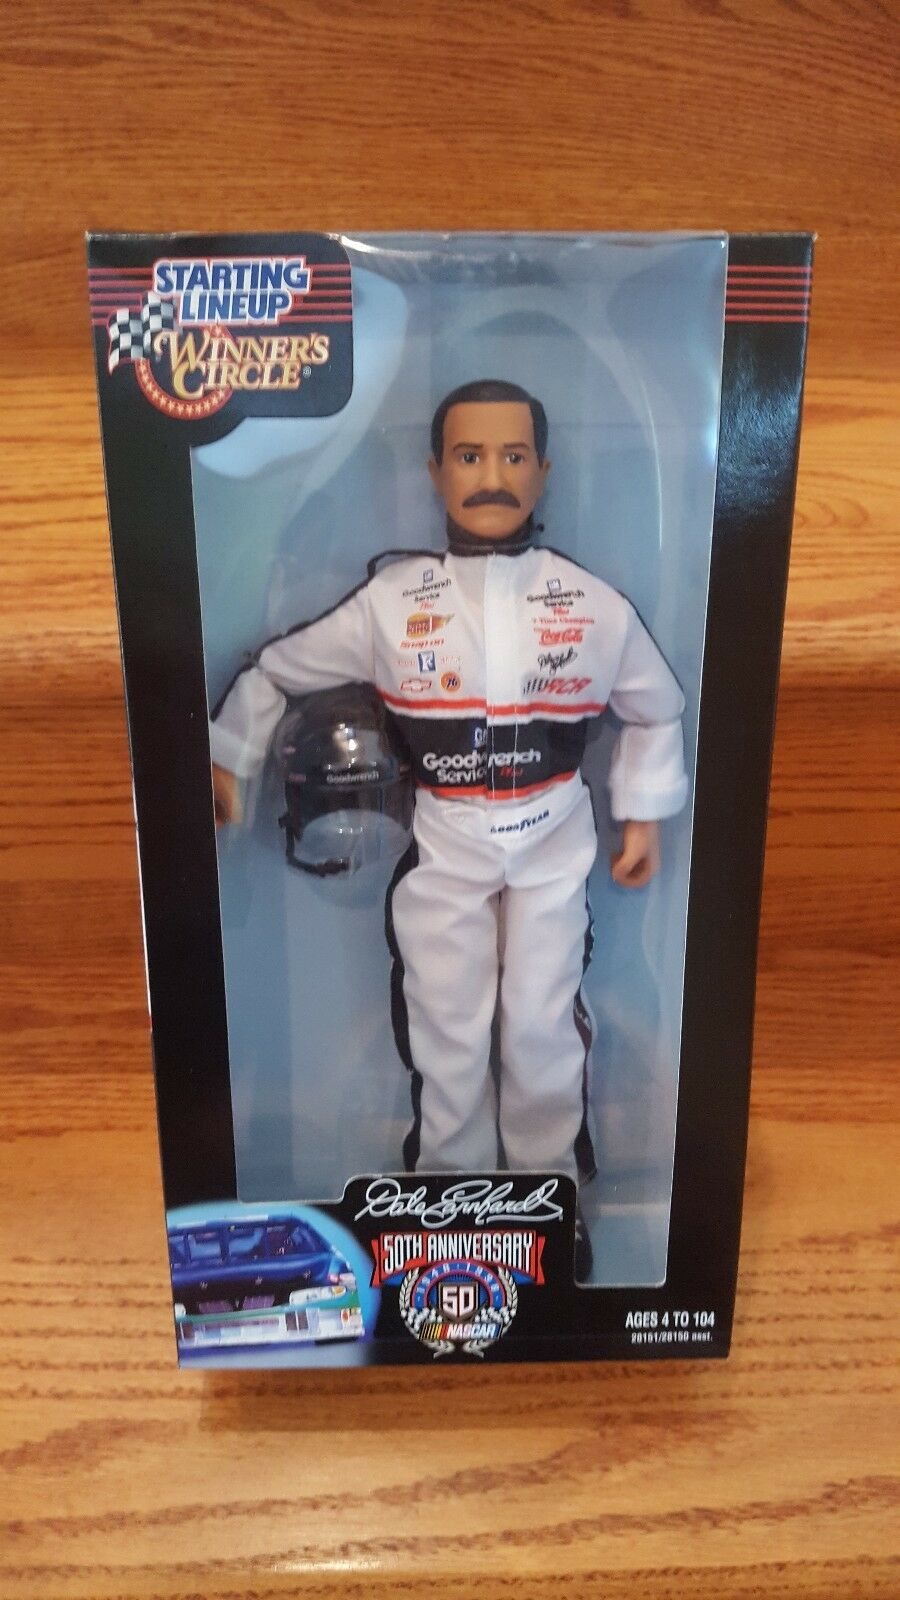 Dale Earnhardt  3 Winners Circle Estrellating Lineup GM Goodwrench Figura De Acción